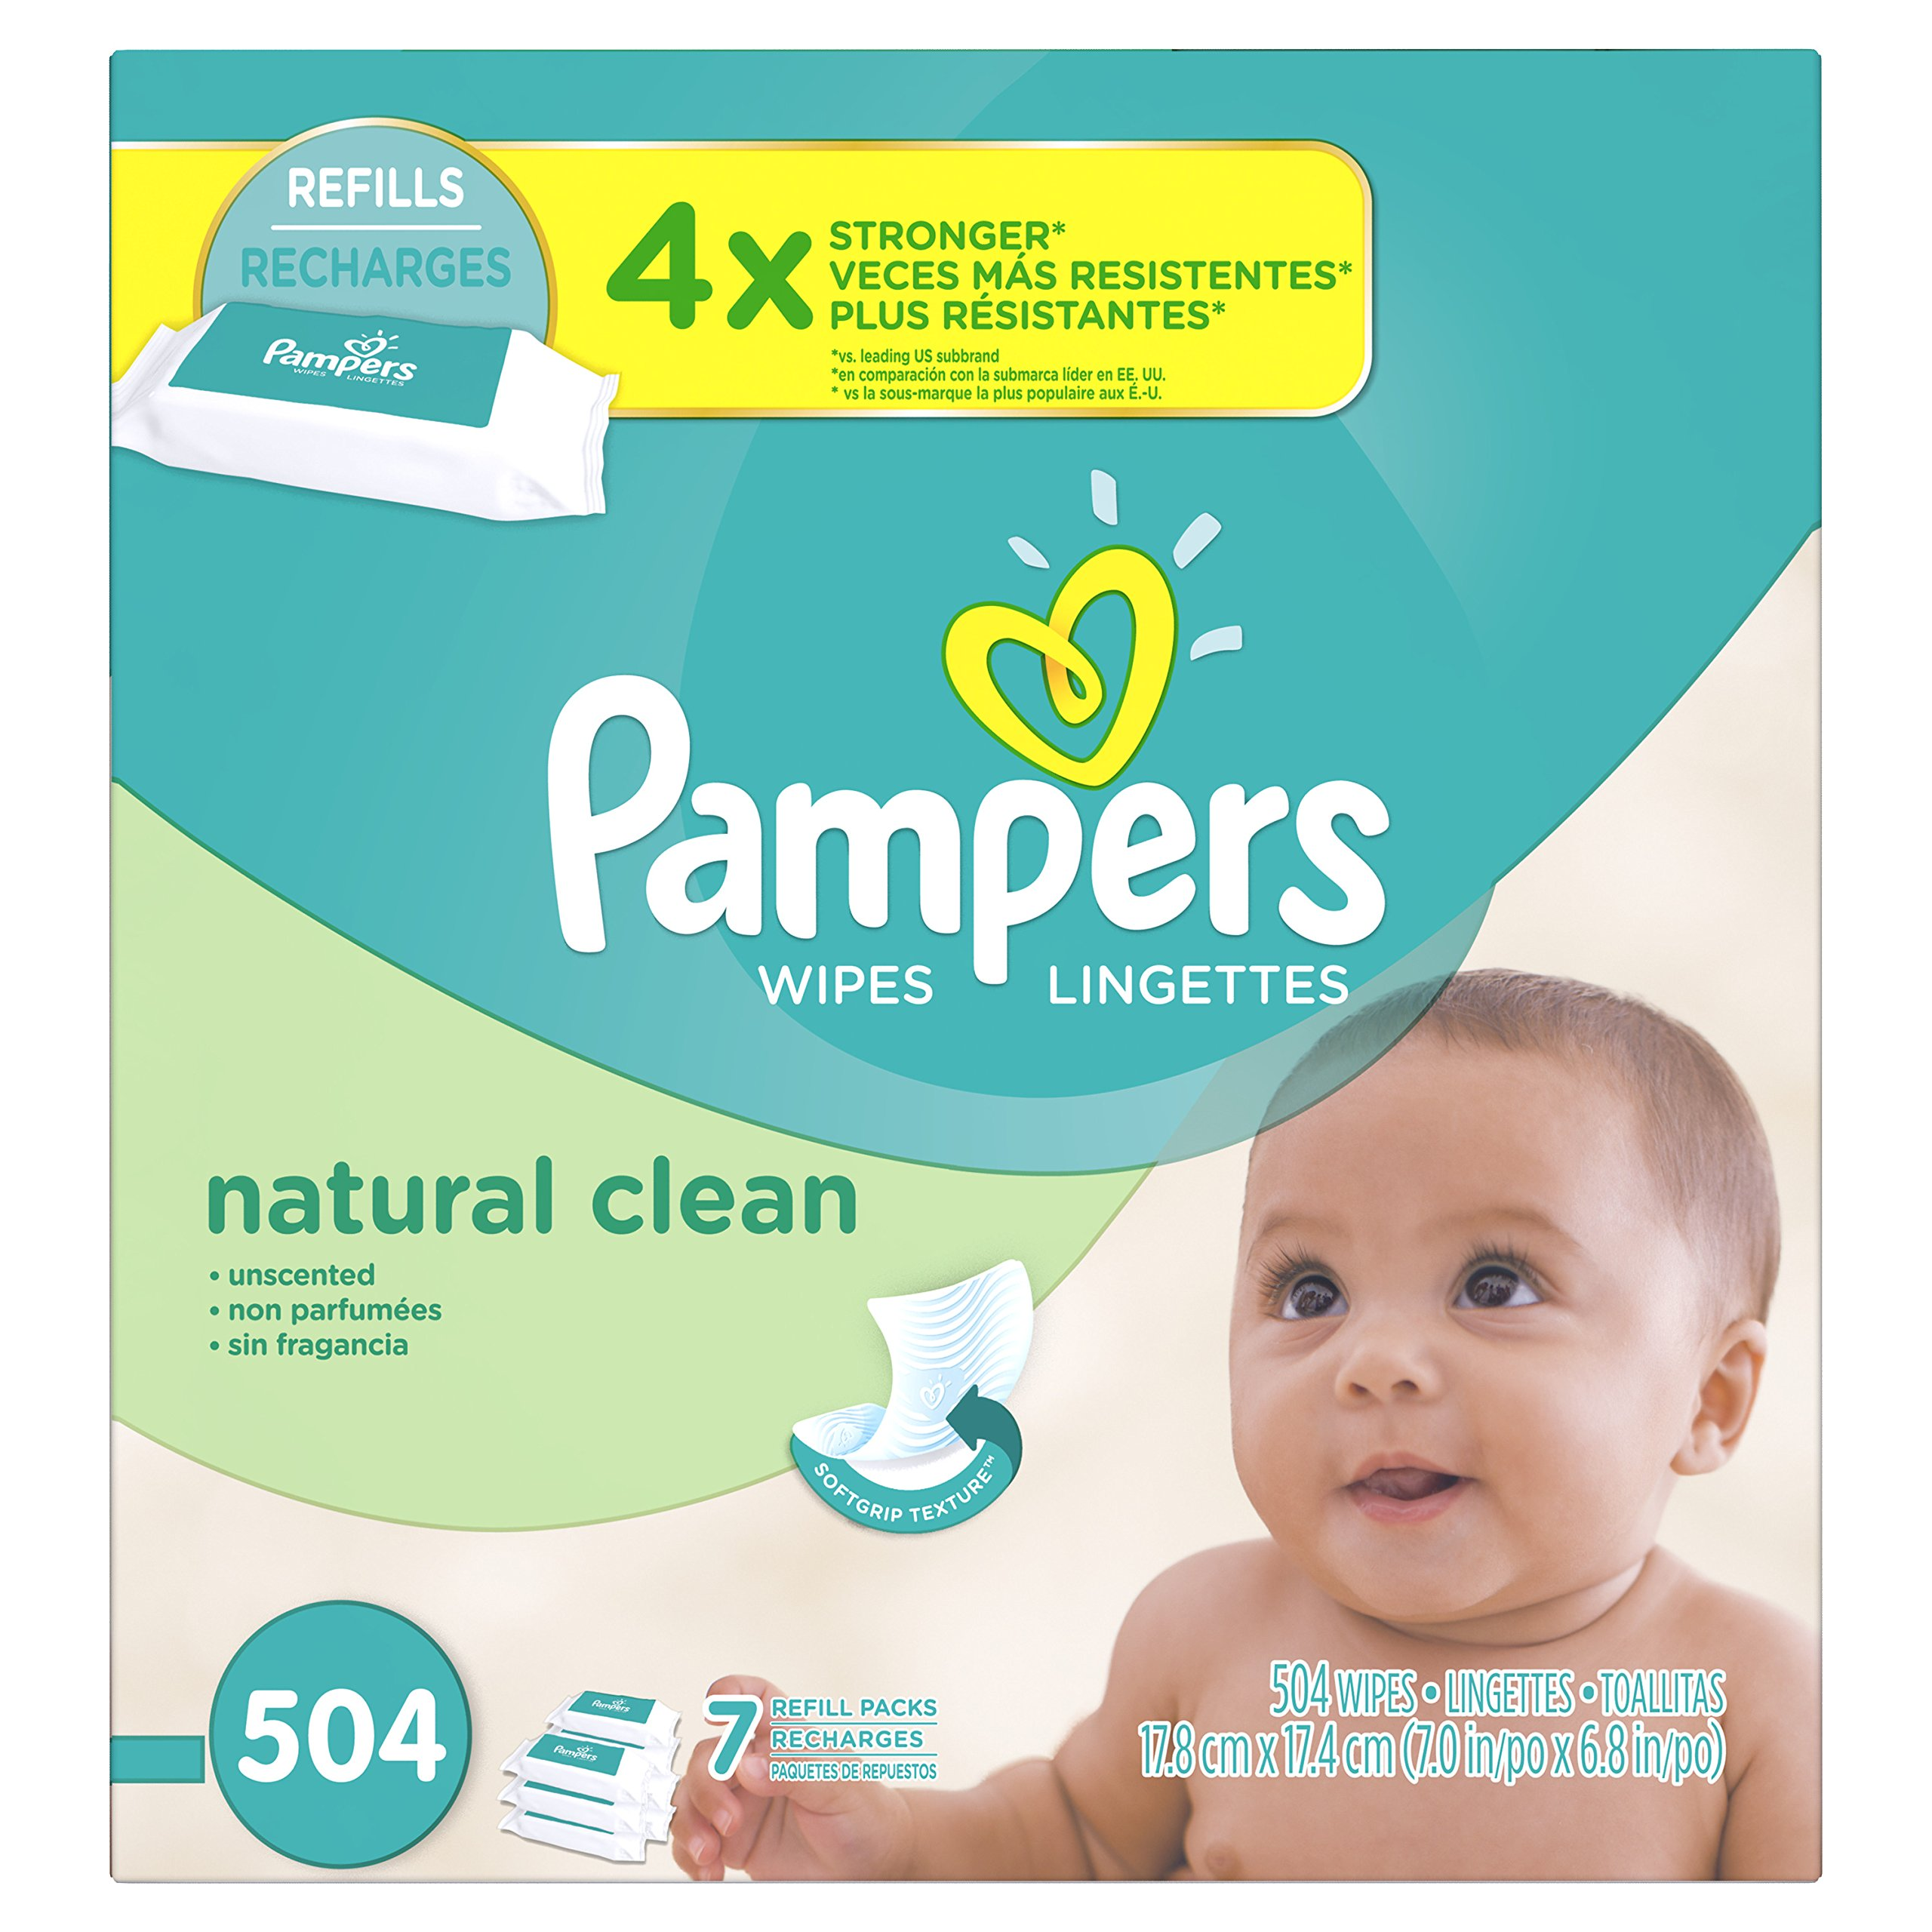 Pampers Natural Clean Unscented Water Baby Wipes 7X Refill Packs, 504 Count by Pampers